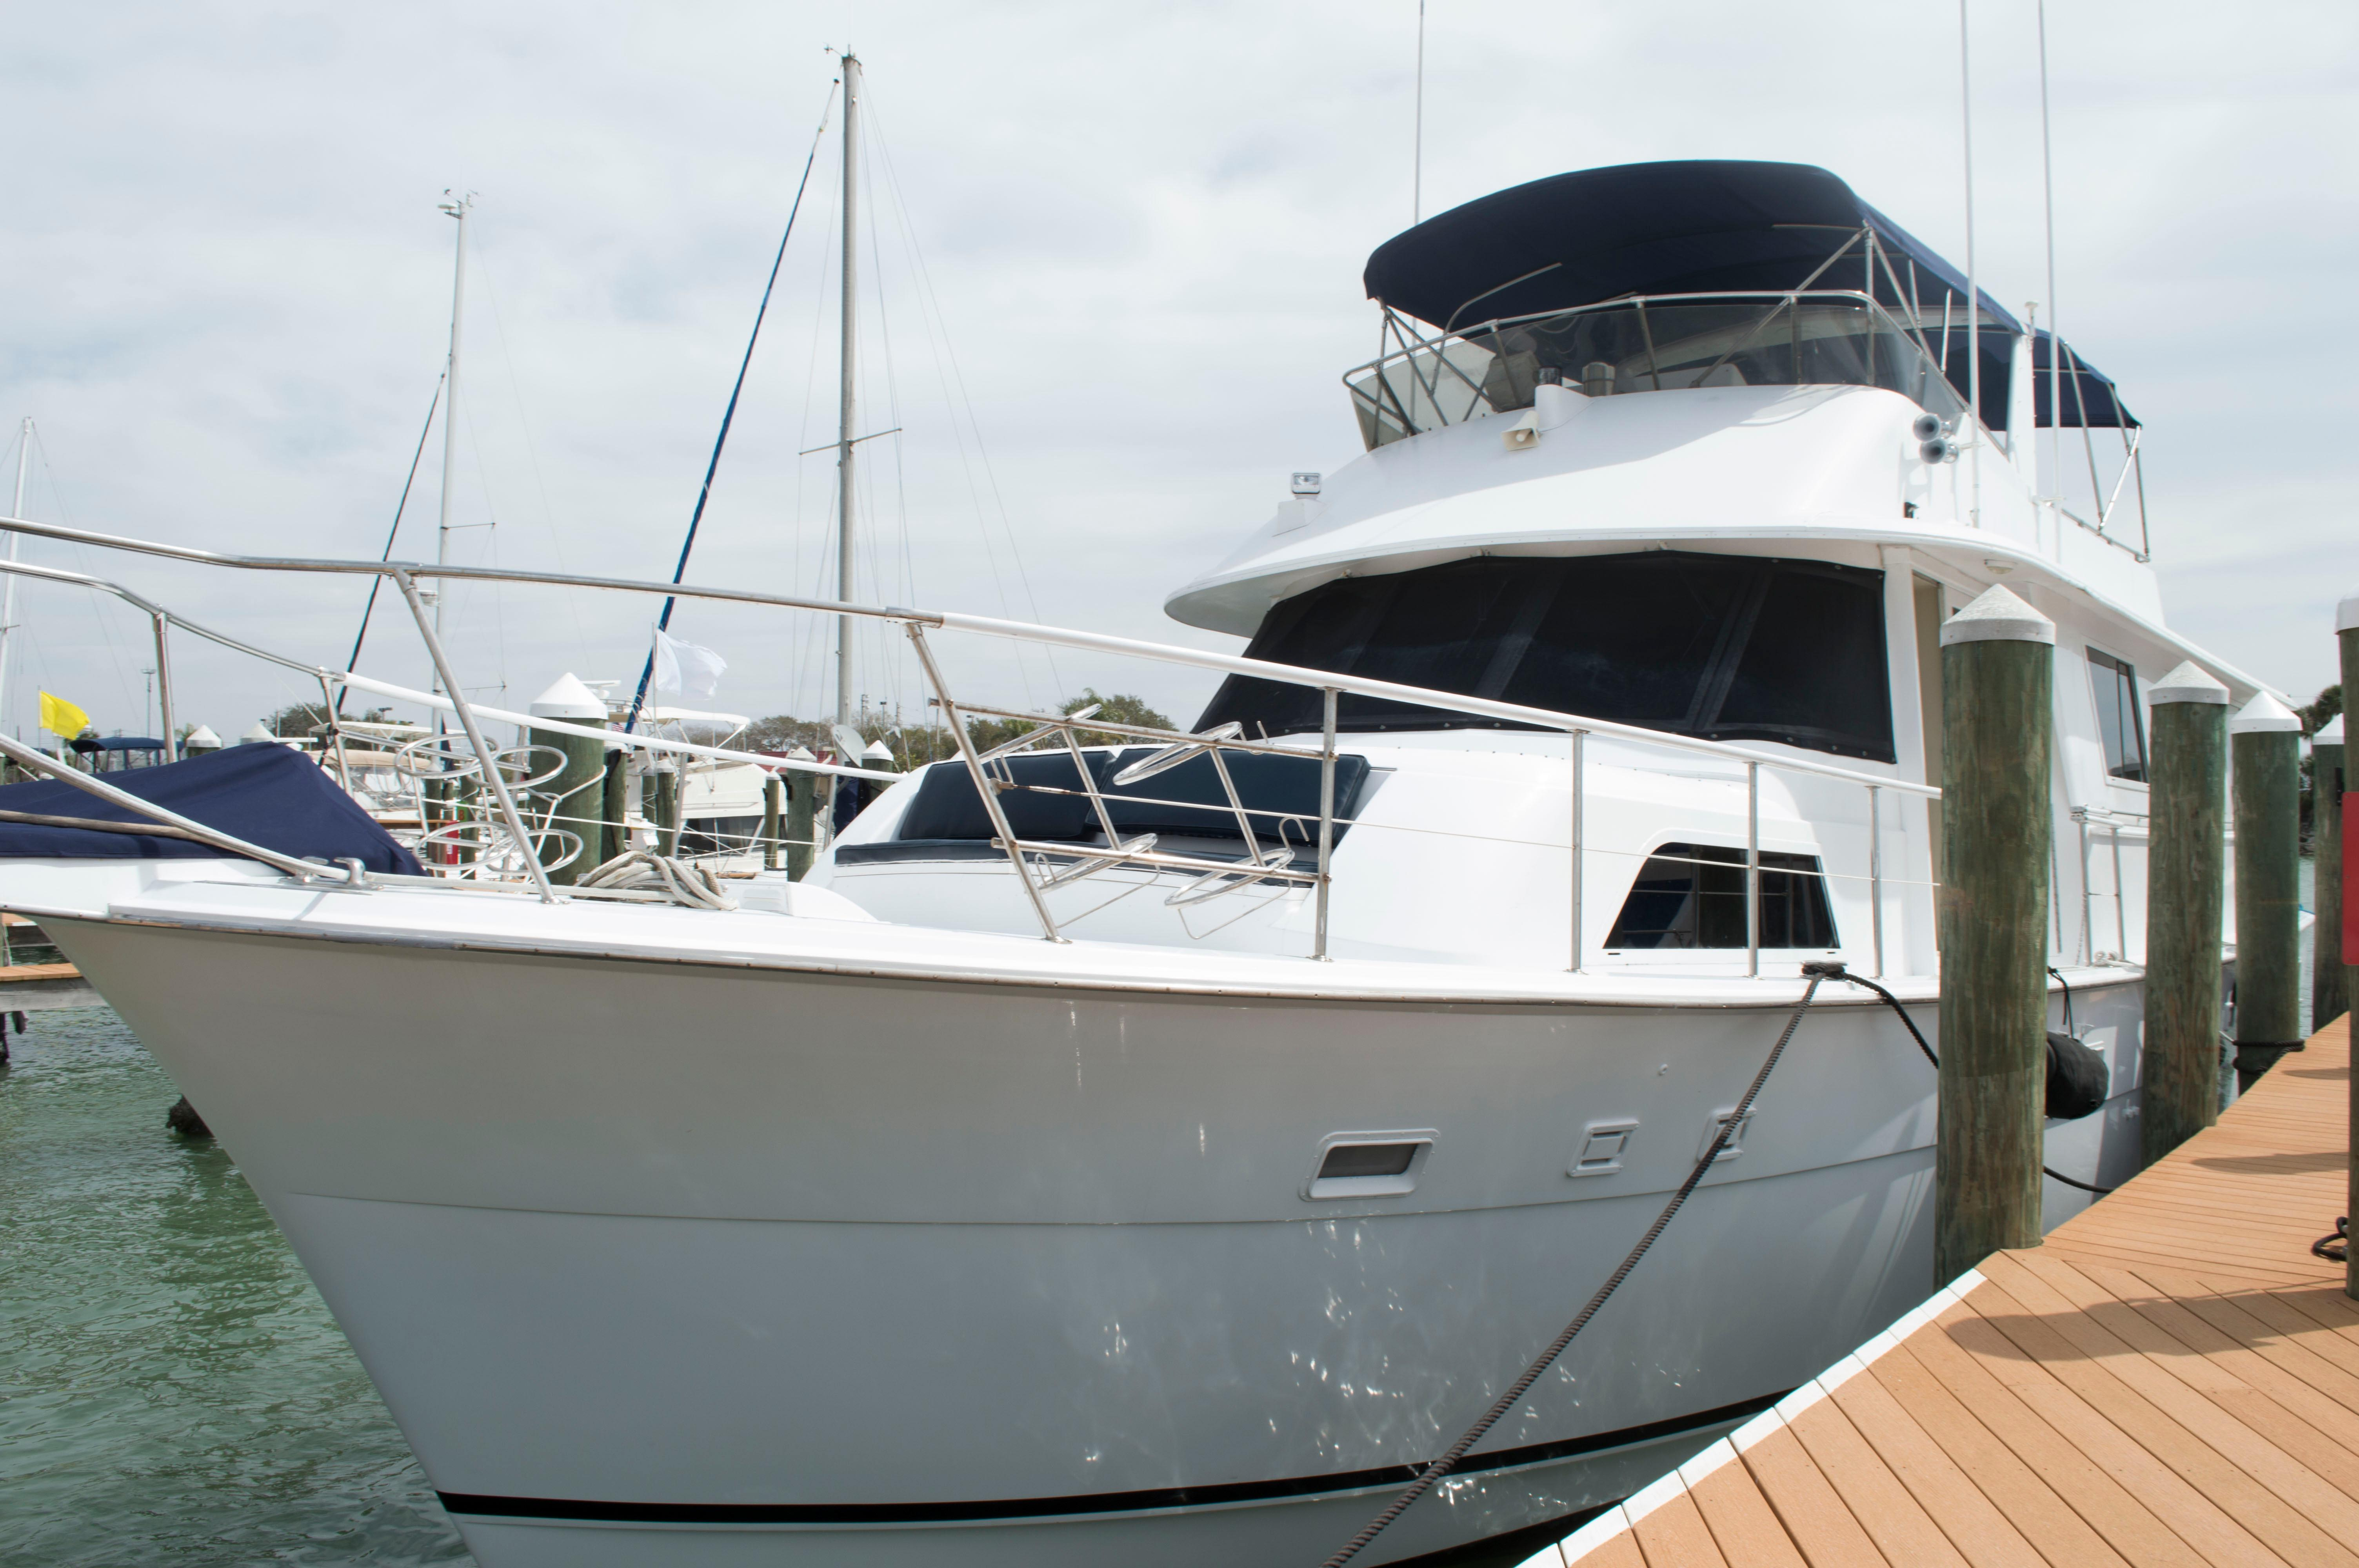 1987 hatteras motor yacht for sale for Hatteras motor yacht for sale